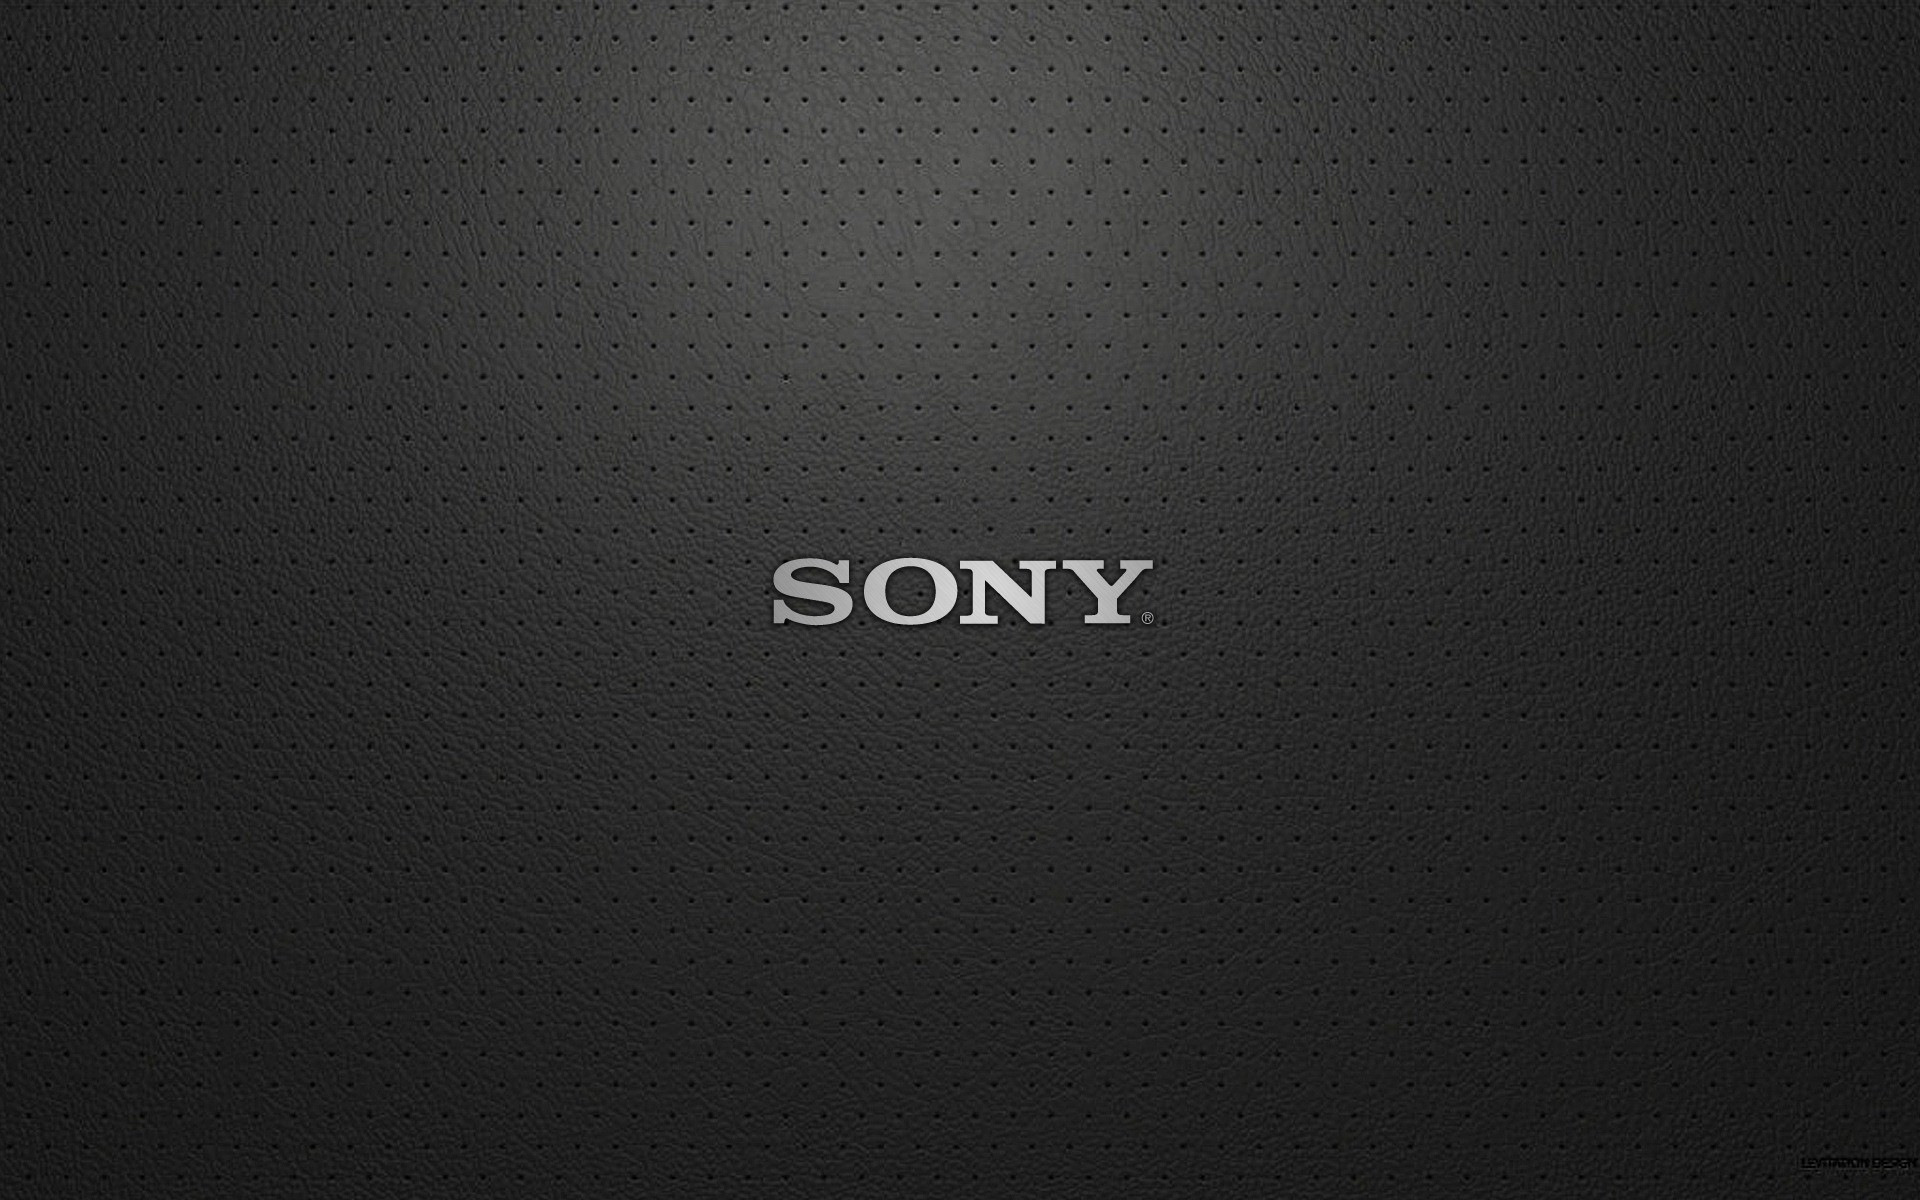 1920x1200 Download Sony Background Wallpaper HD Wallcapture